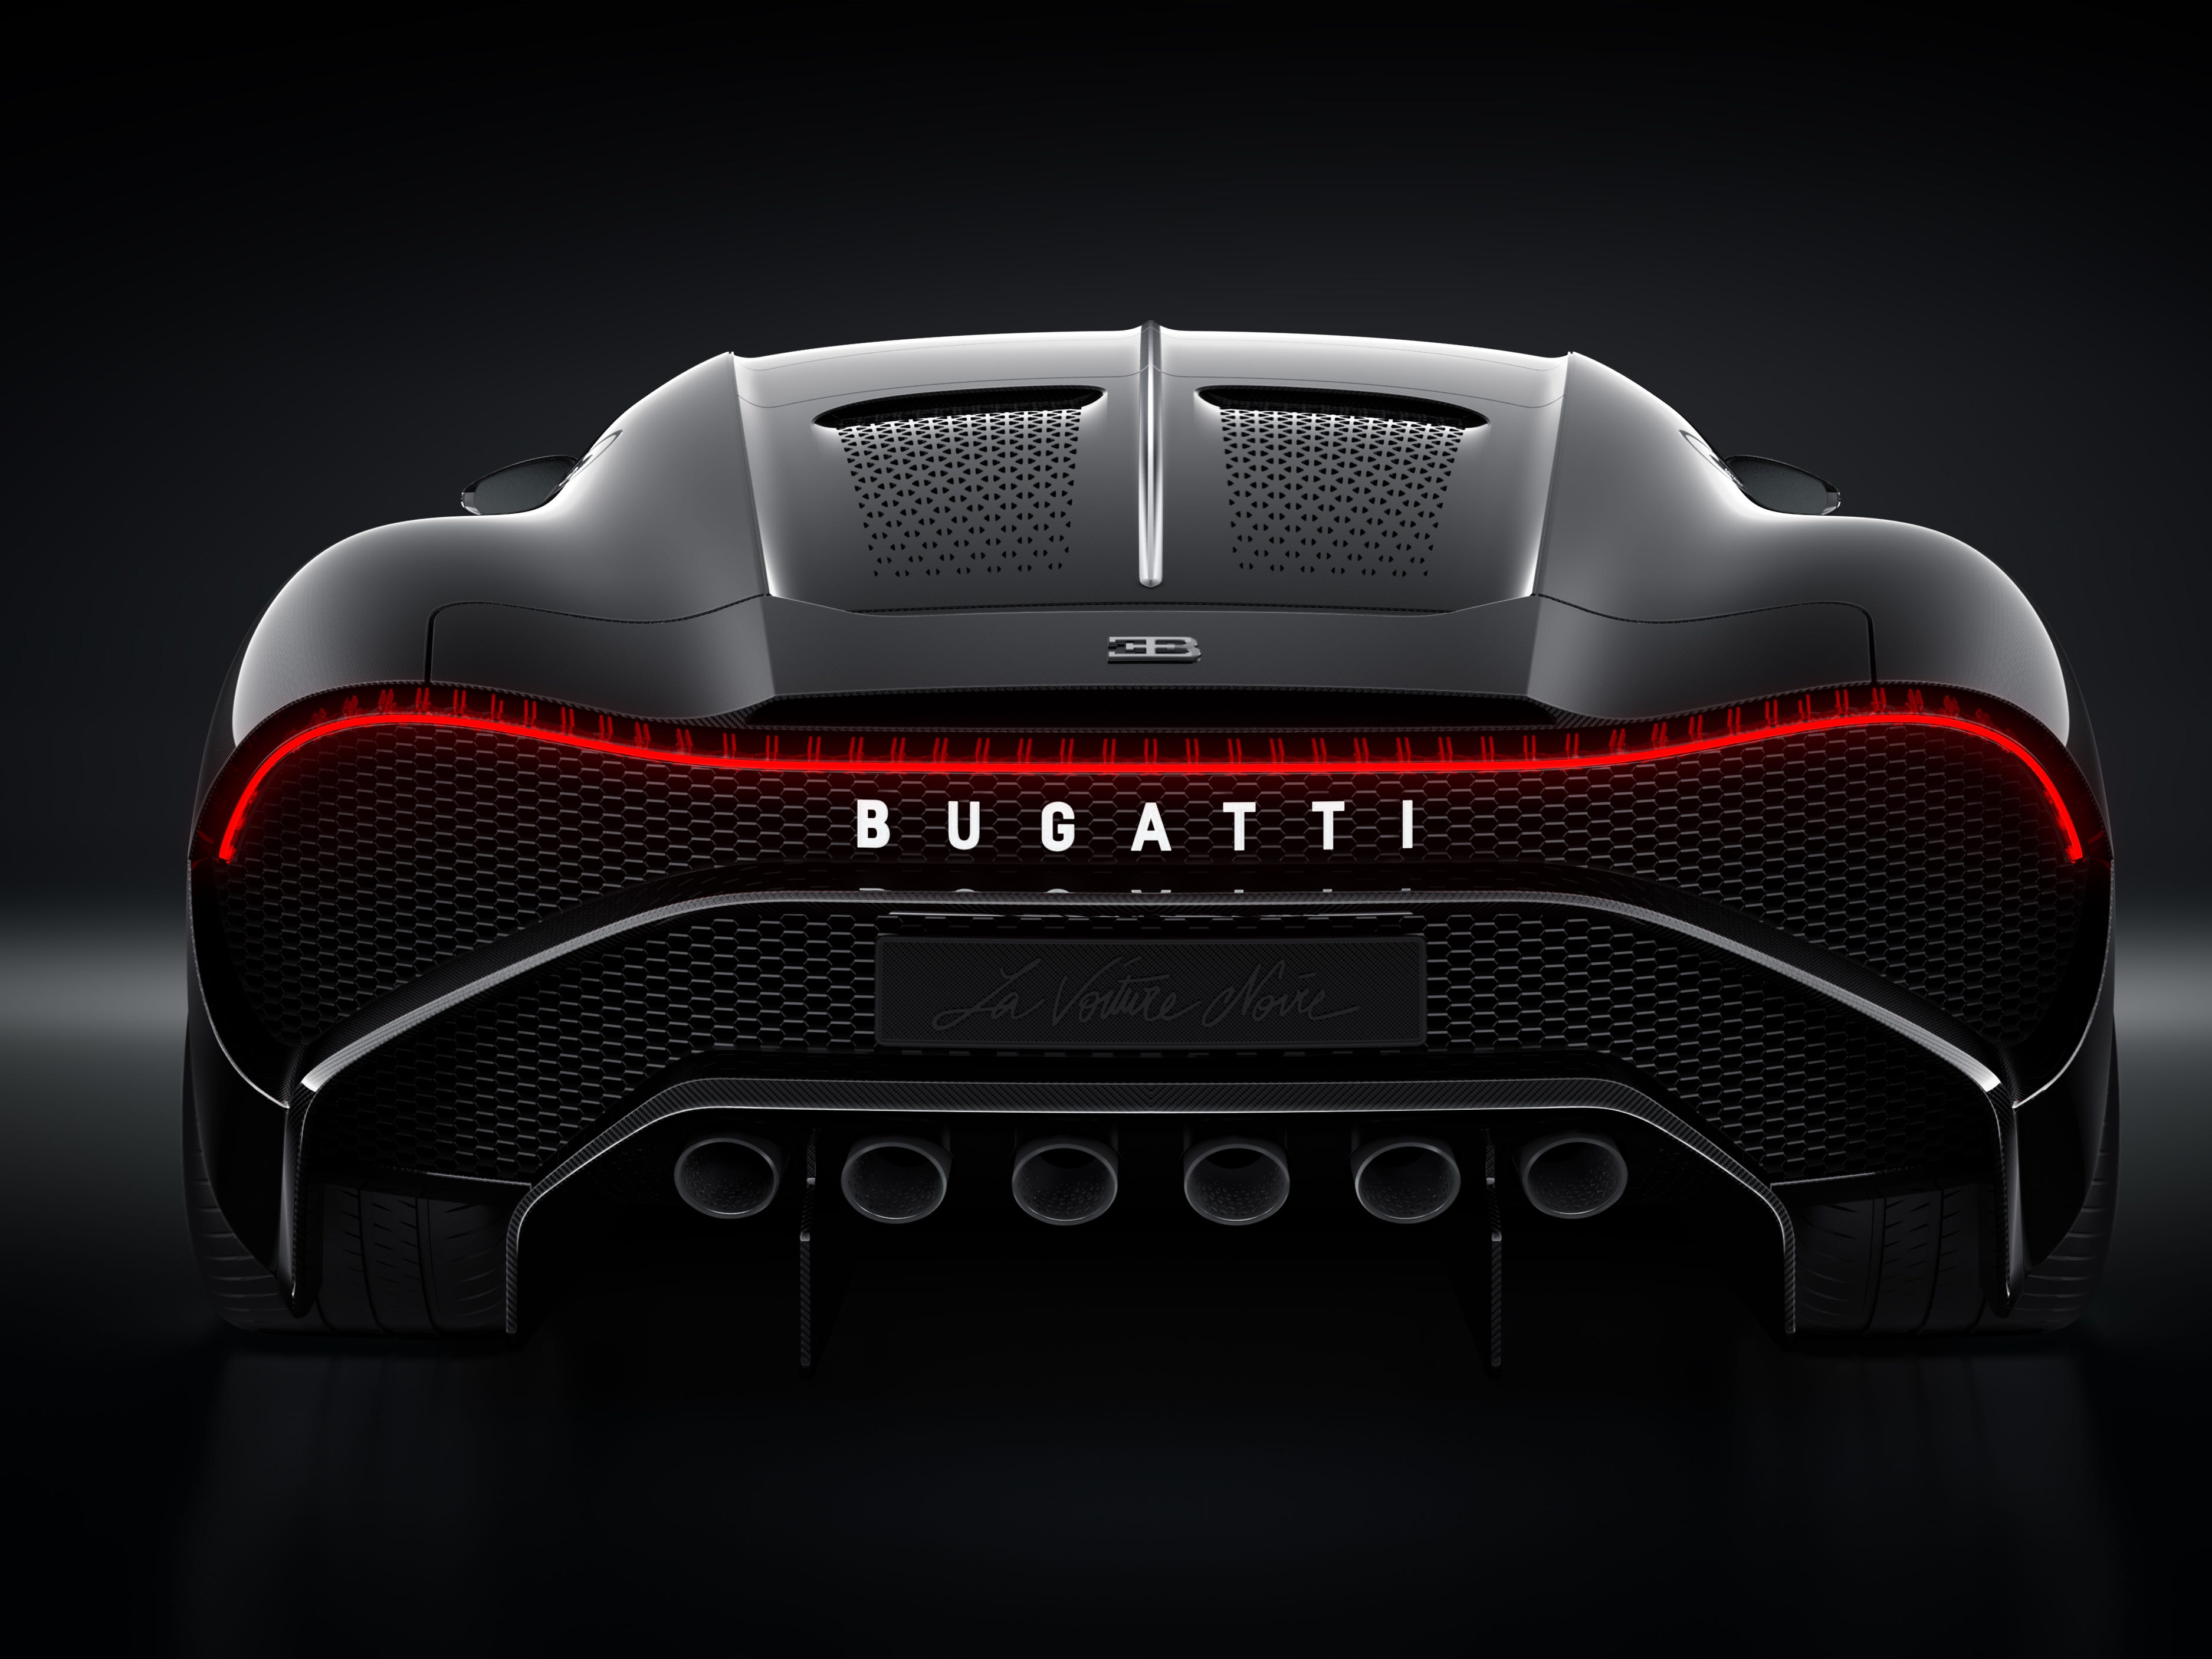 At the rear, the company name is illuminated in white atop the perforated panel that covers the engine.